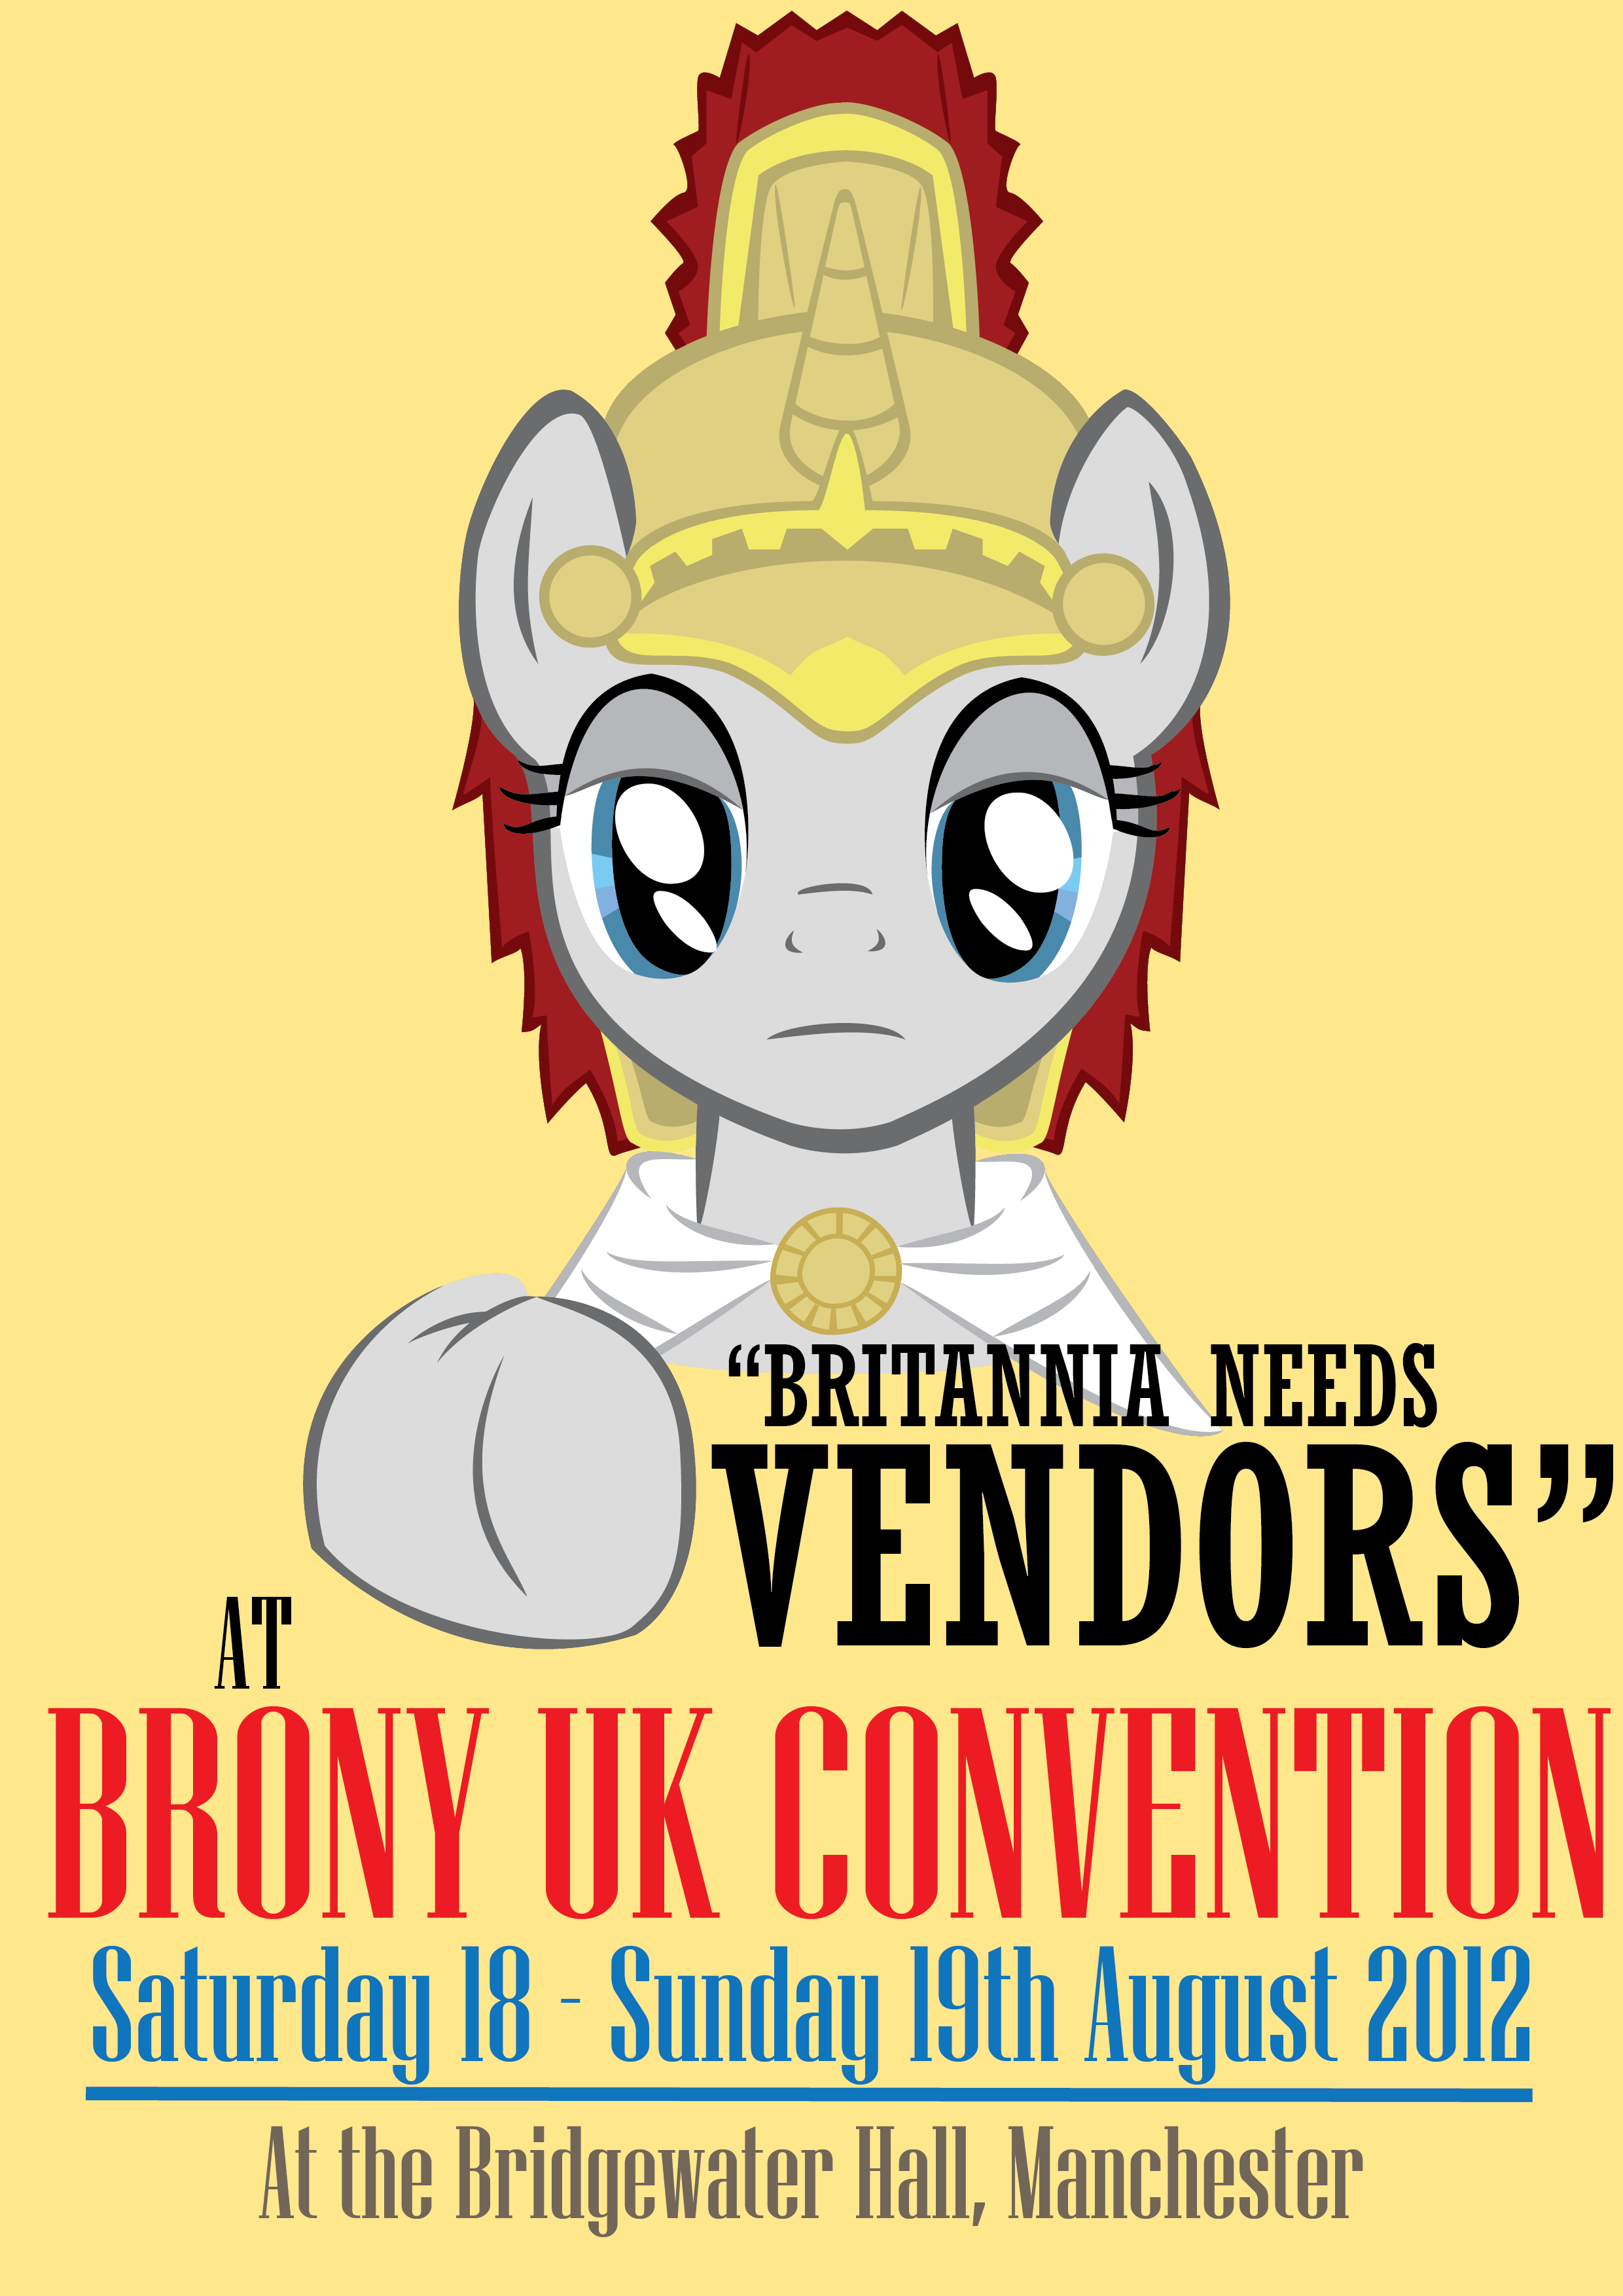 Brony UK Convention - Britannia Needs Vendors! by Baron-Kettell